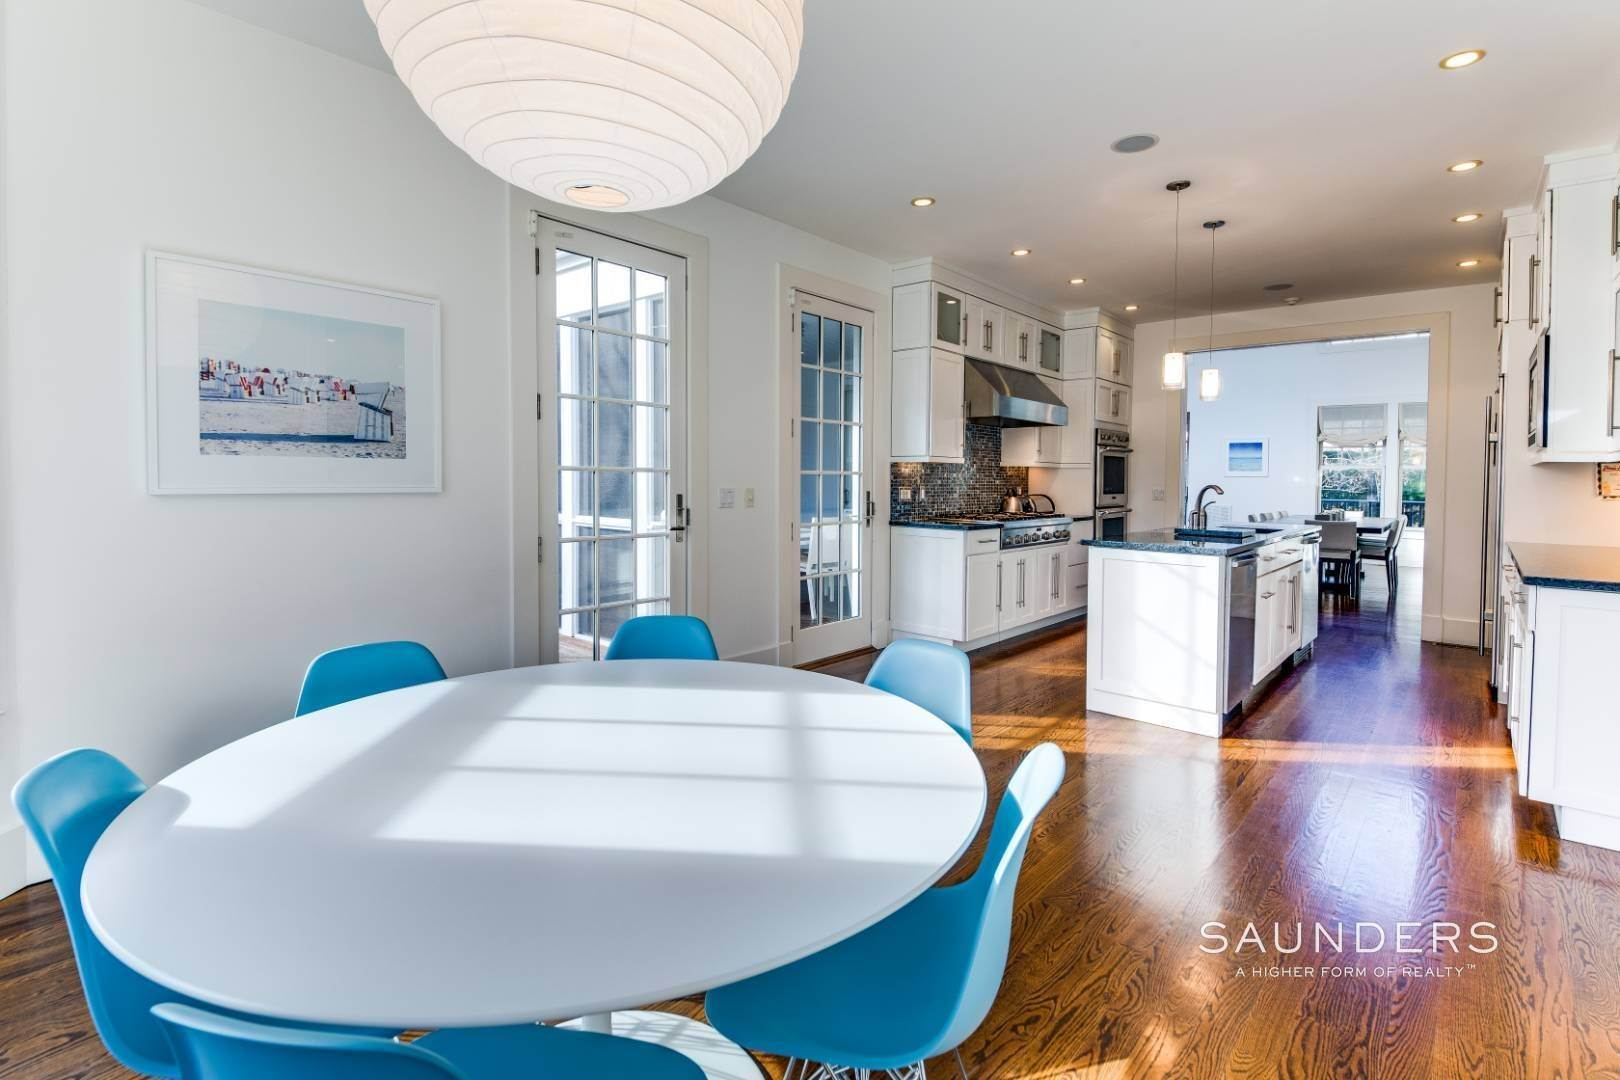 9. Single Family Homes for Sale at Wainscott South Traditional Near Beach Lane 10 Merriwood Drive, Wainscott, East Hampton Town, NY 11975